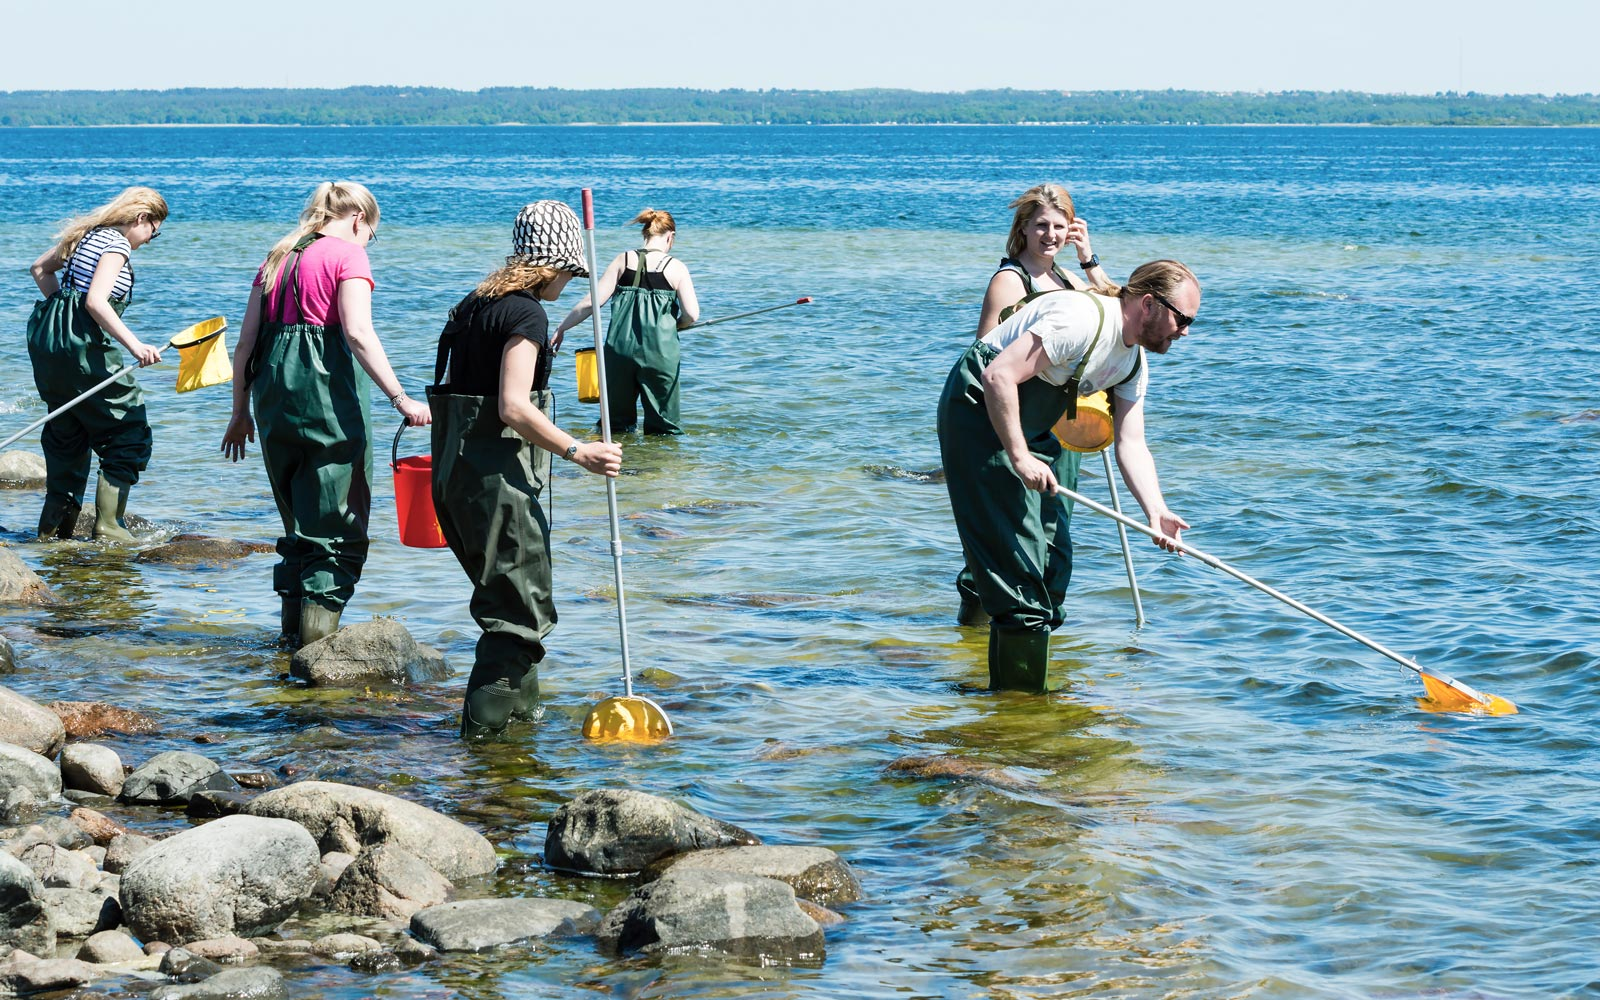 Small group wading in and examining shallow coastal water with ring nets